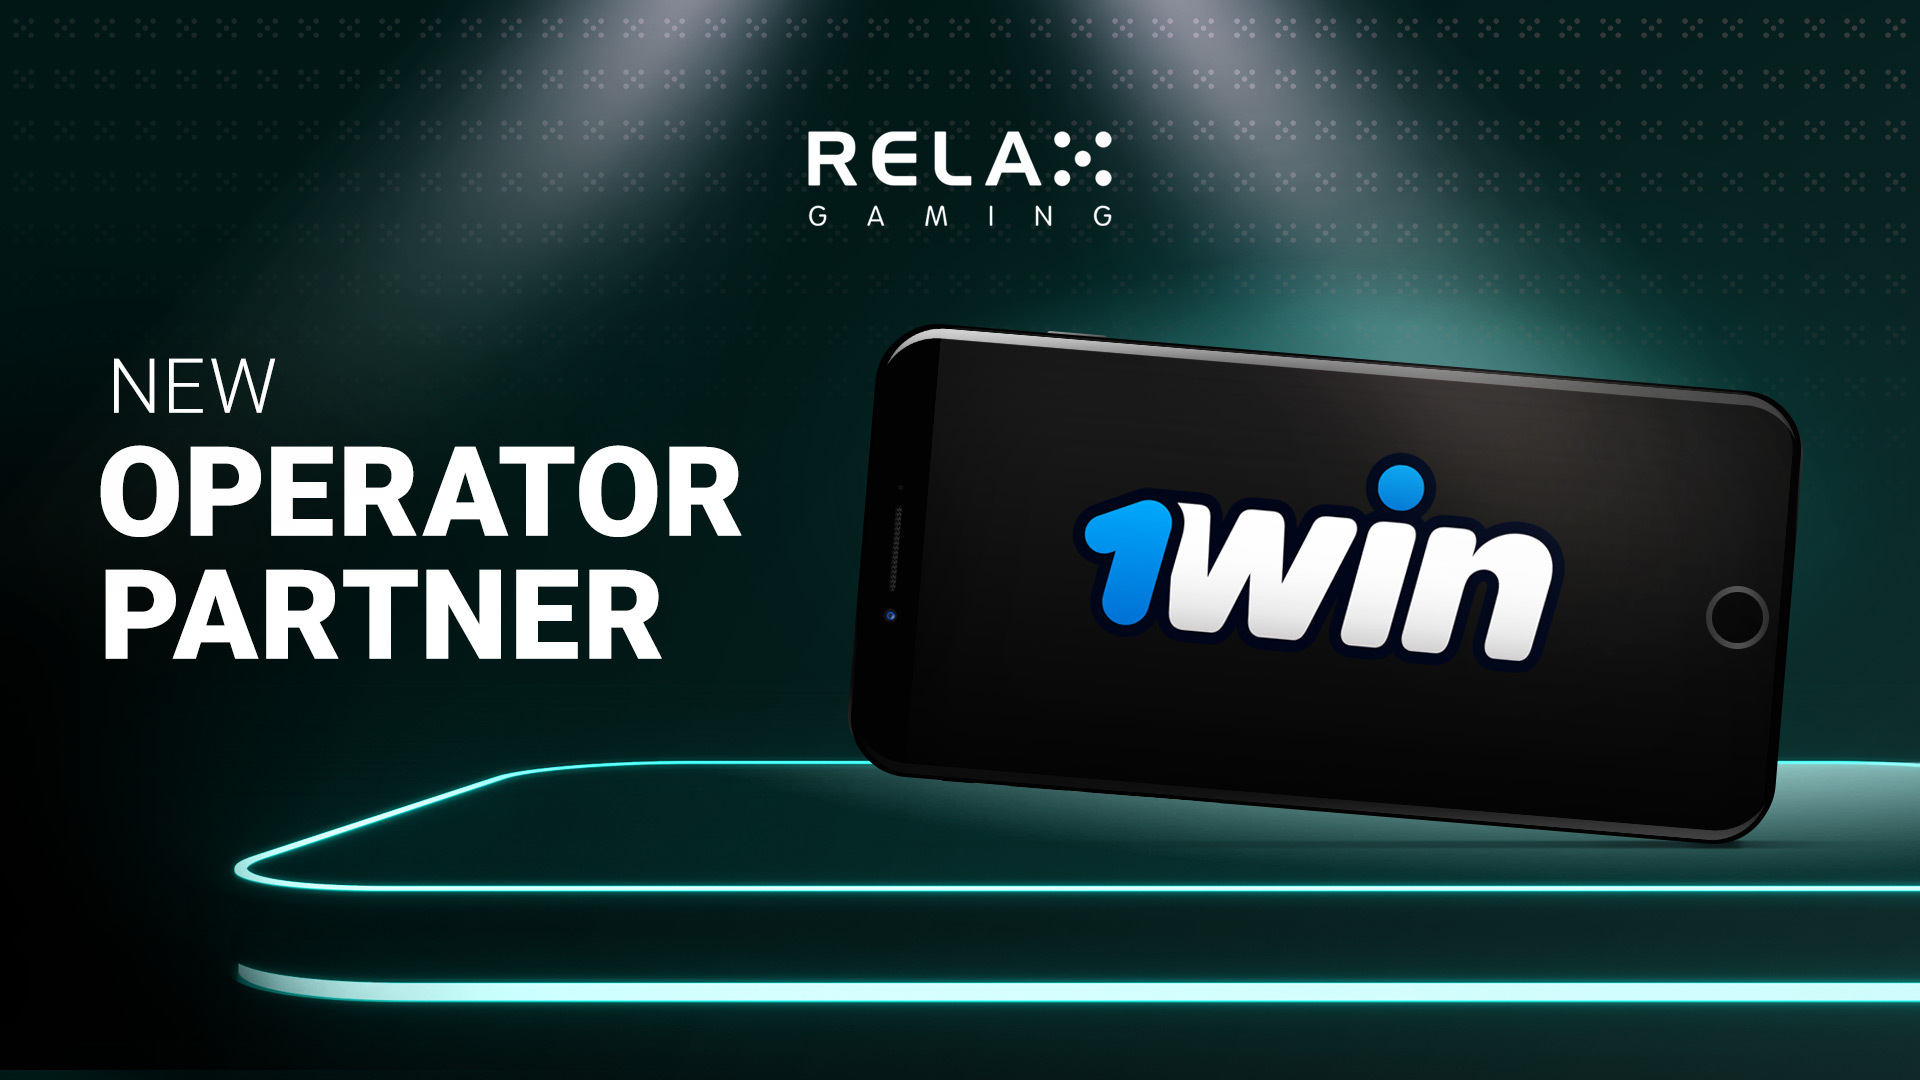 Relax Gaming launches with new online casino 1win